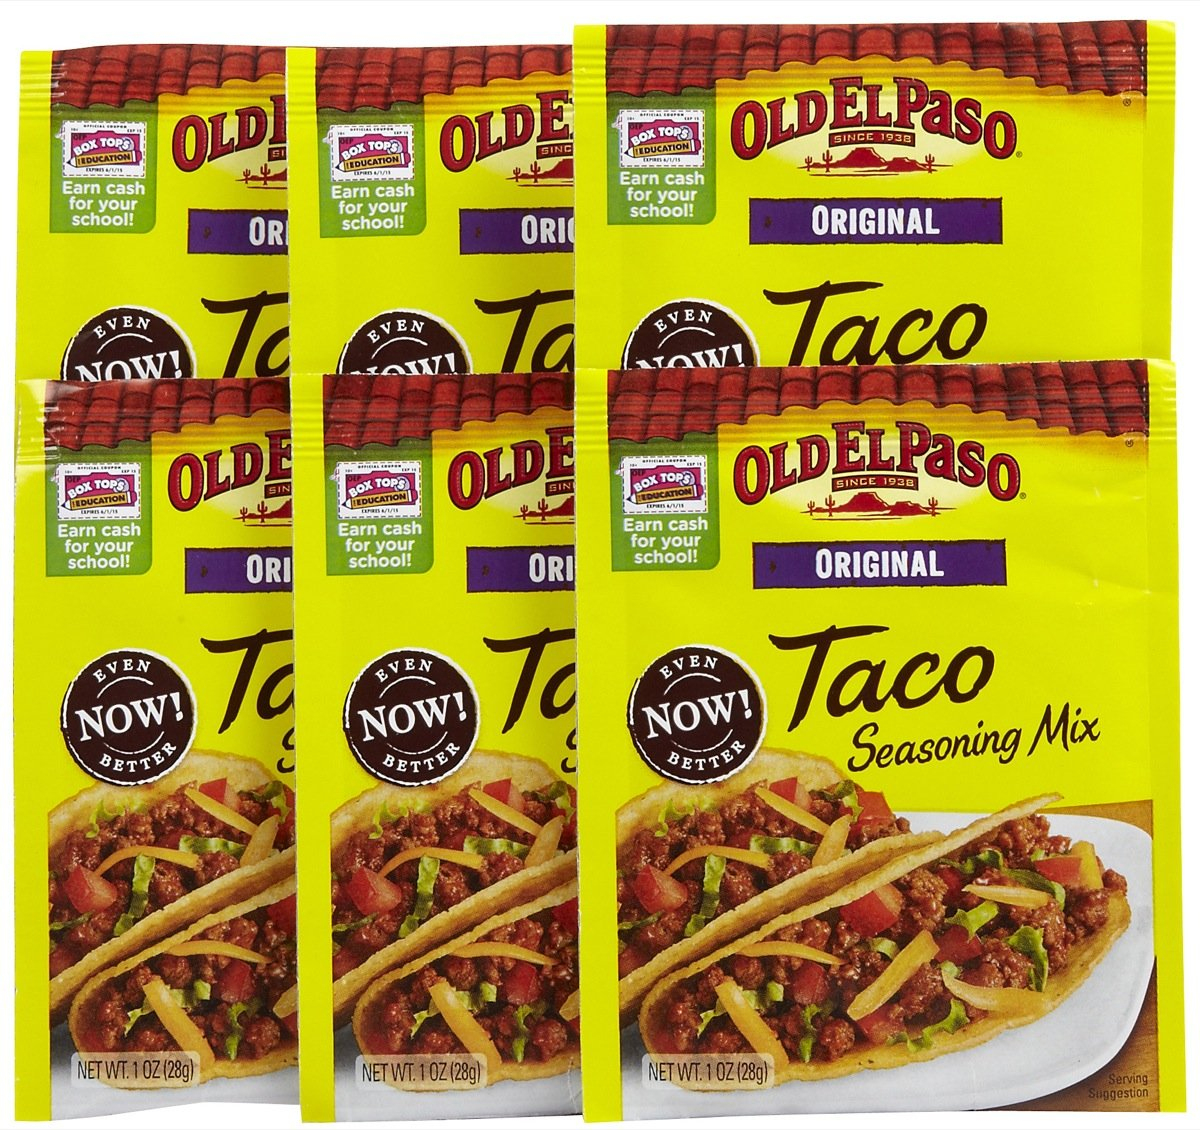 New Old El Paso Coupon - Free Taco Seasoning At Many Stores - Ftm - Free Printable Old El Paso Coupons